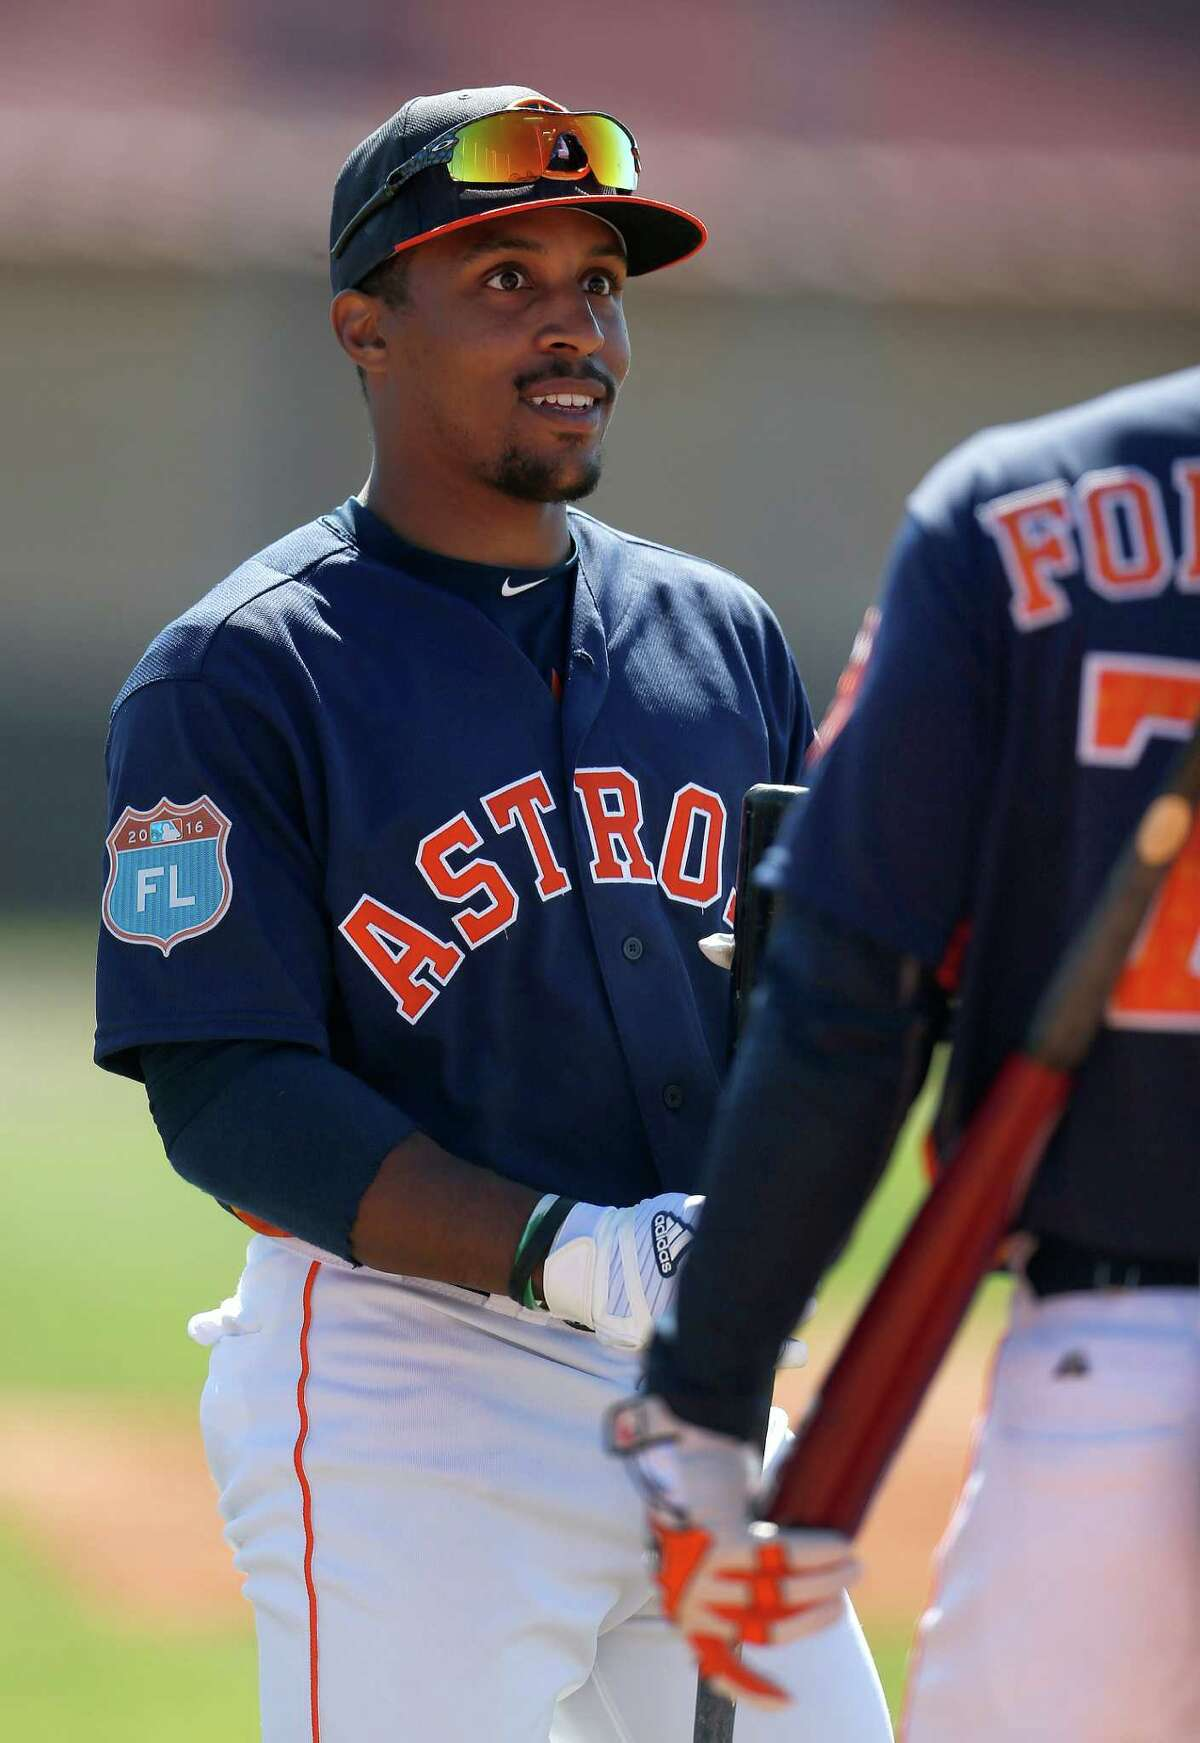 Tony Kemp was batting .298 with 21 walks to 22 strikeouts in 34 games with Class AAA Fresno.